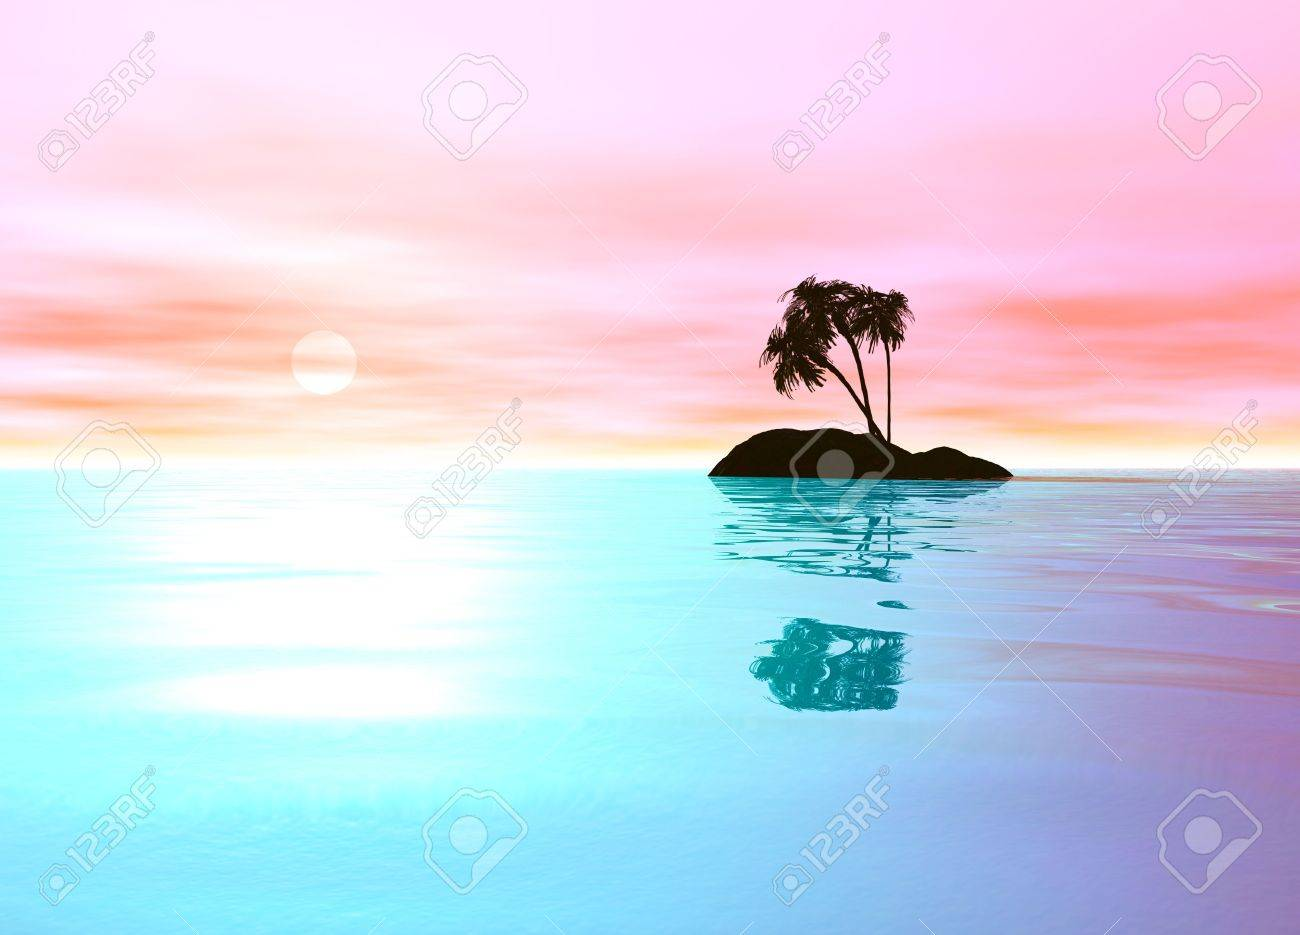 Romantic Pink Desert Island with Palm Tree Sillhouette against the Horizon Stock Photo - 3799721